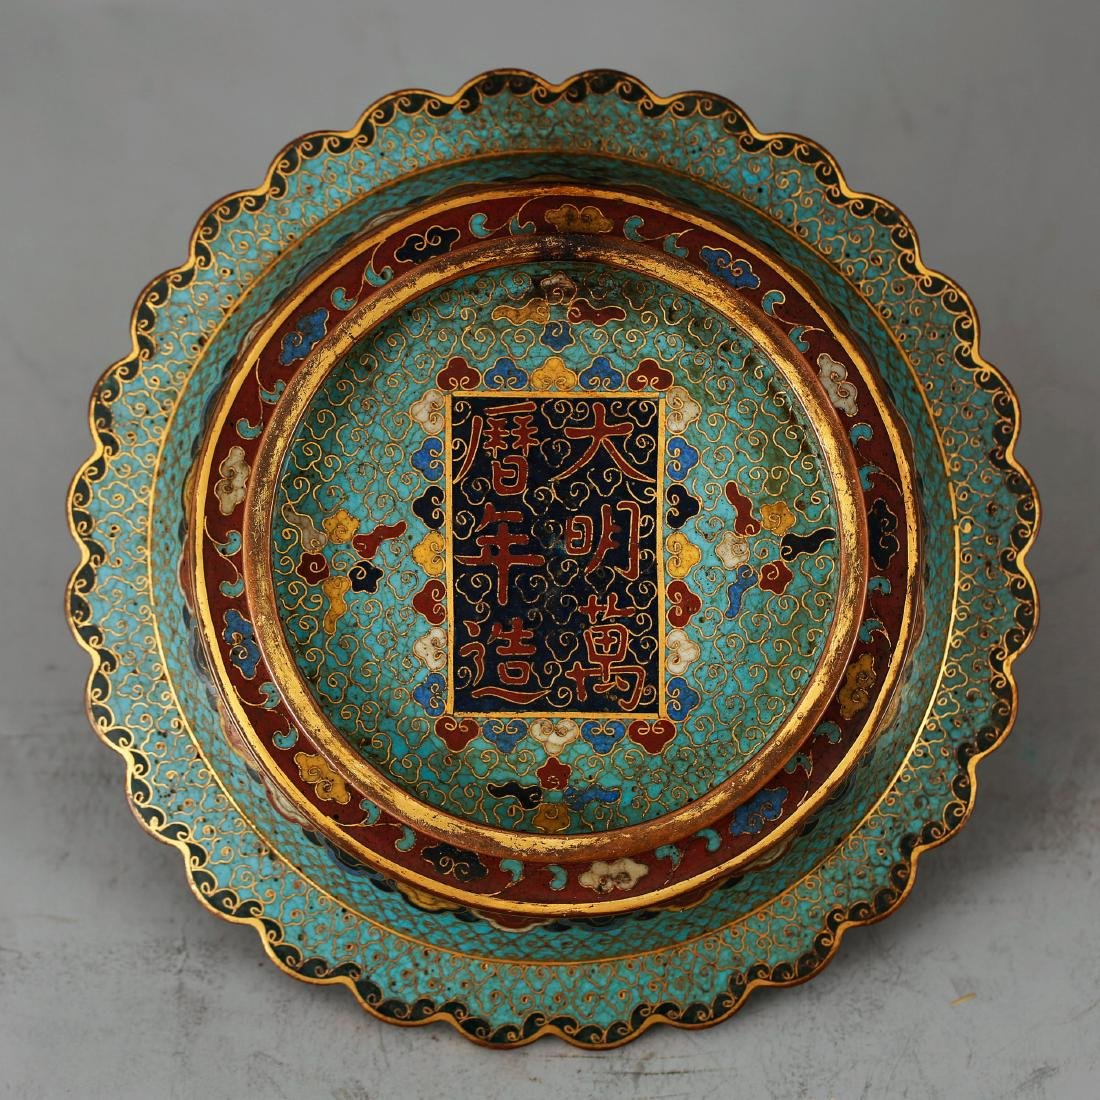 CHINESE CLOISONNE ENAMEL CANDLE STAND - 3